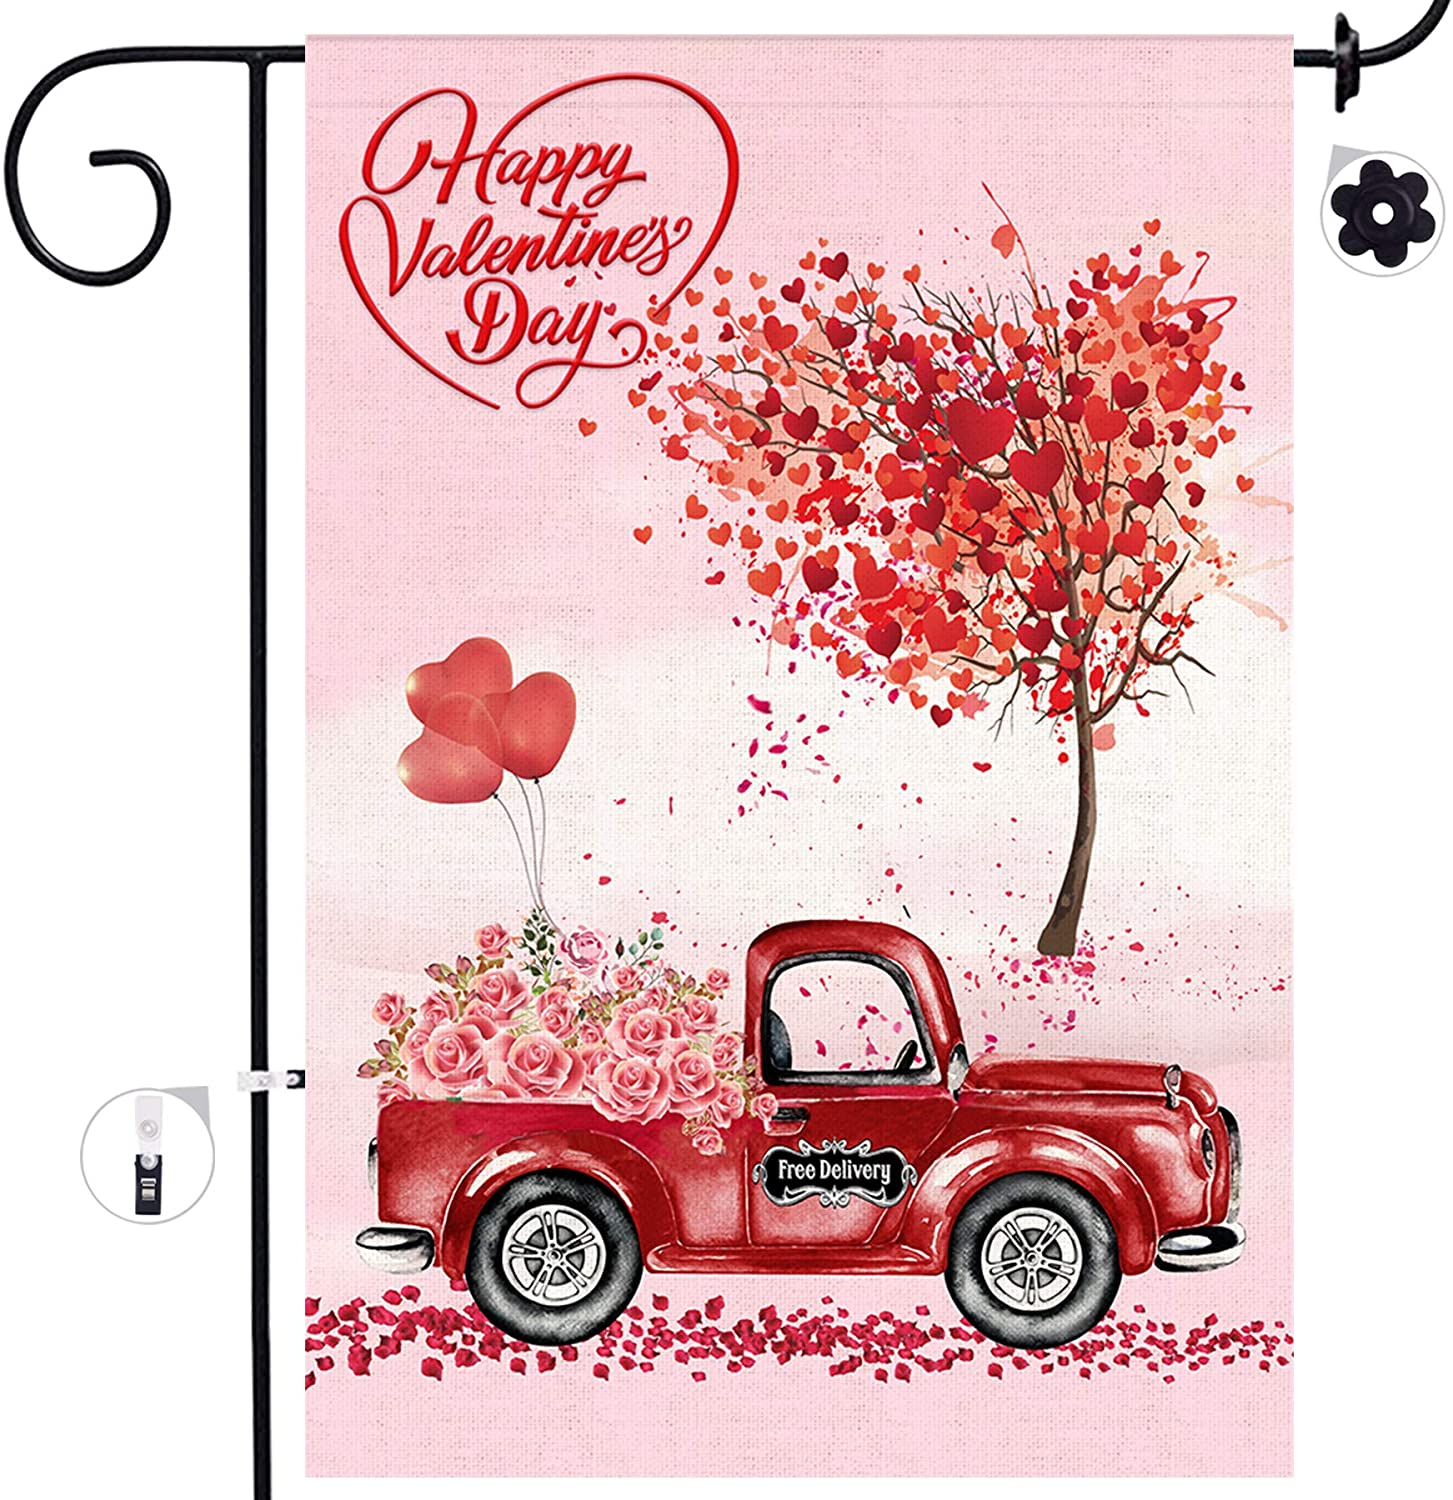 Bonsai Tree Valentines Day Garden Flag, Double Sided Valentine Burlap House Flags, Love Hearts Tree Red Truck with Rose Flowers Flags 12x18 Prime, Valentines Day Decorations for The Home